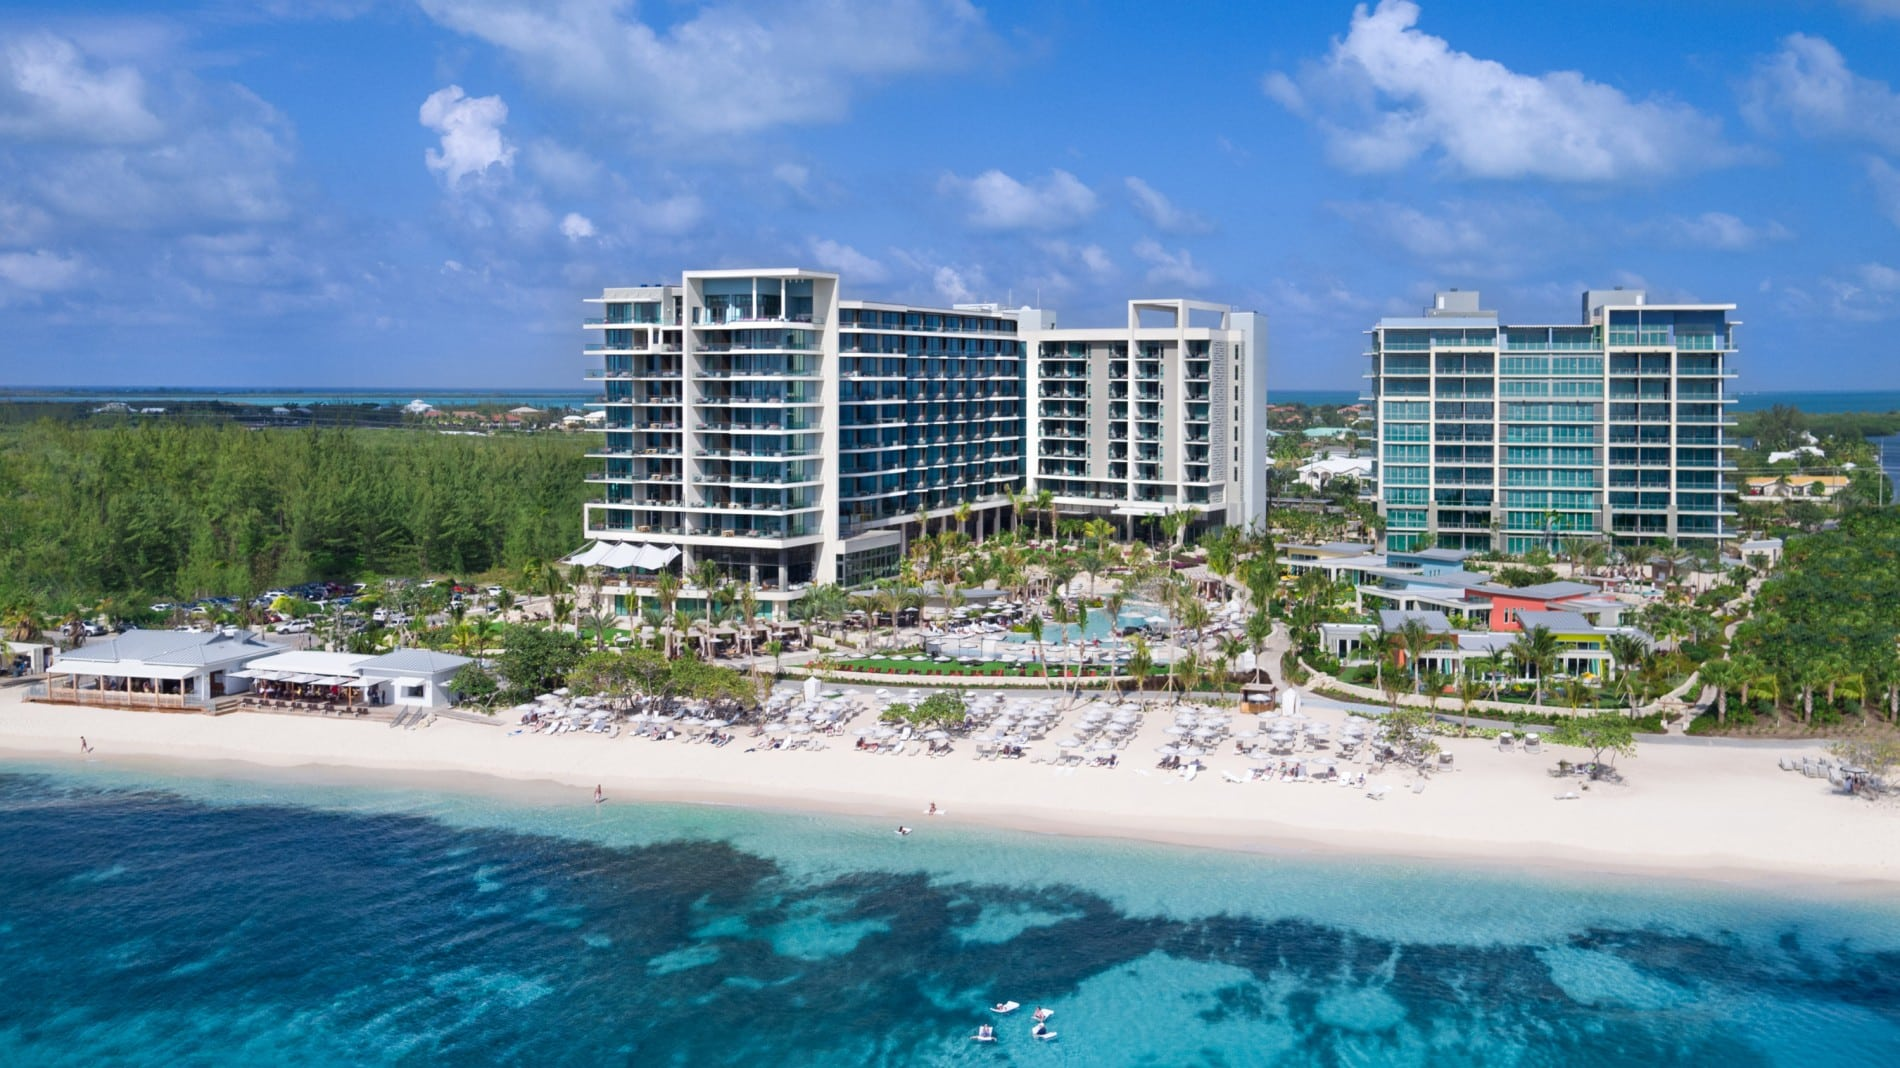 Grand Cayman: A Caribbean Incentive Trip Front Runner